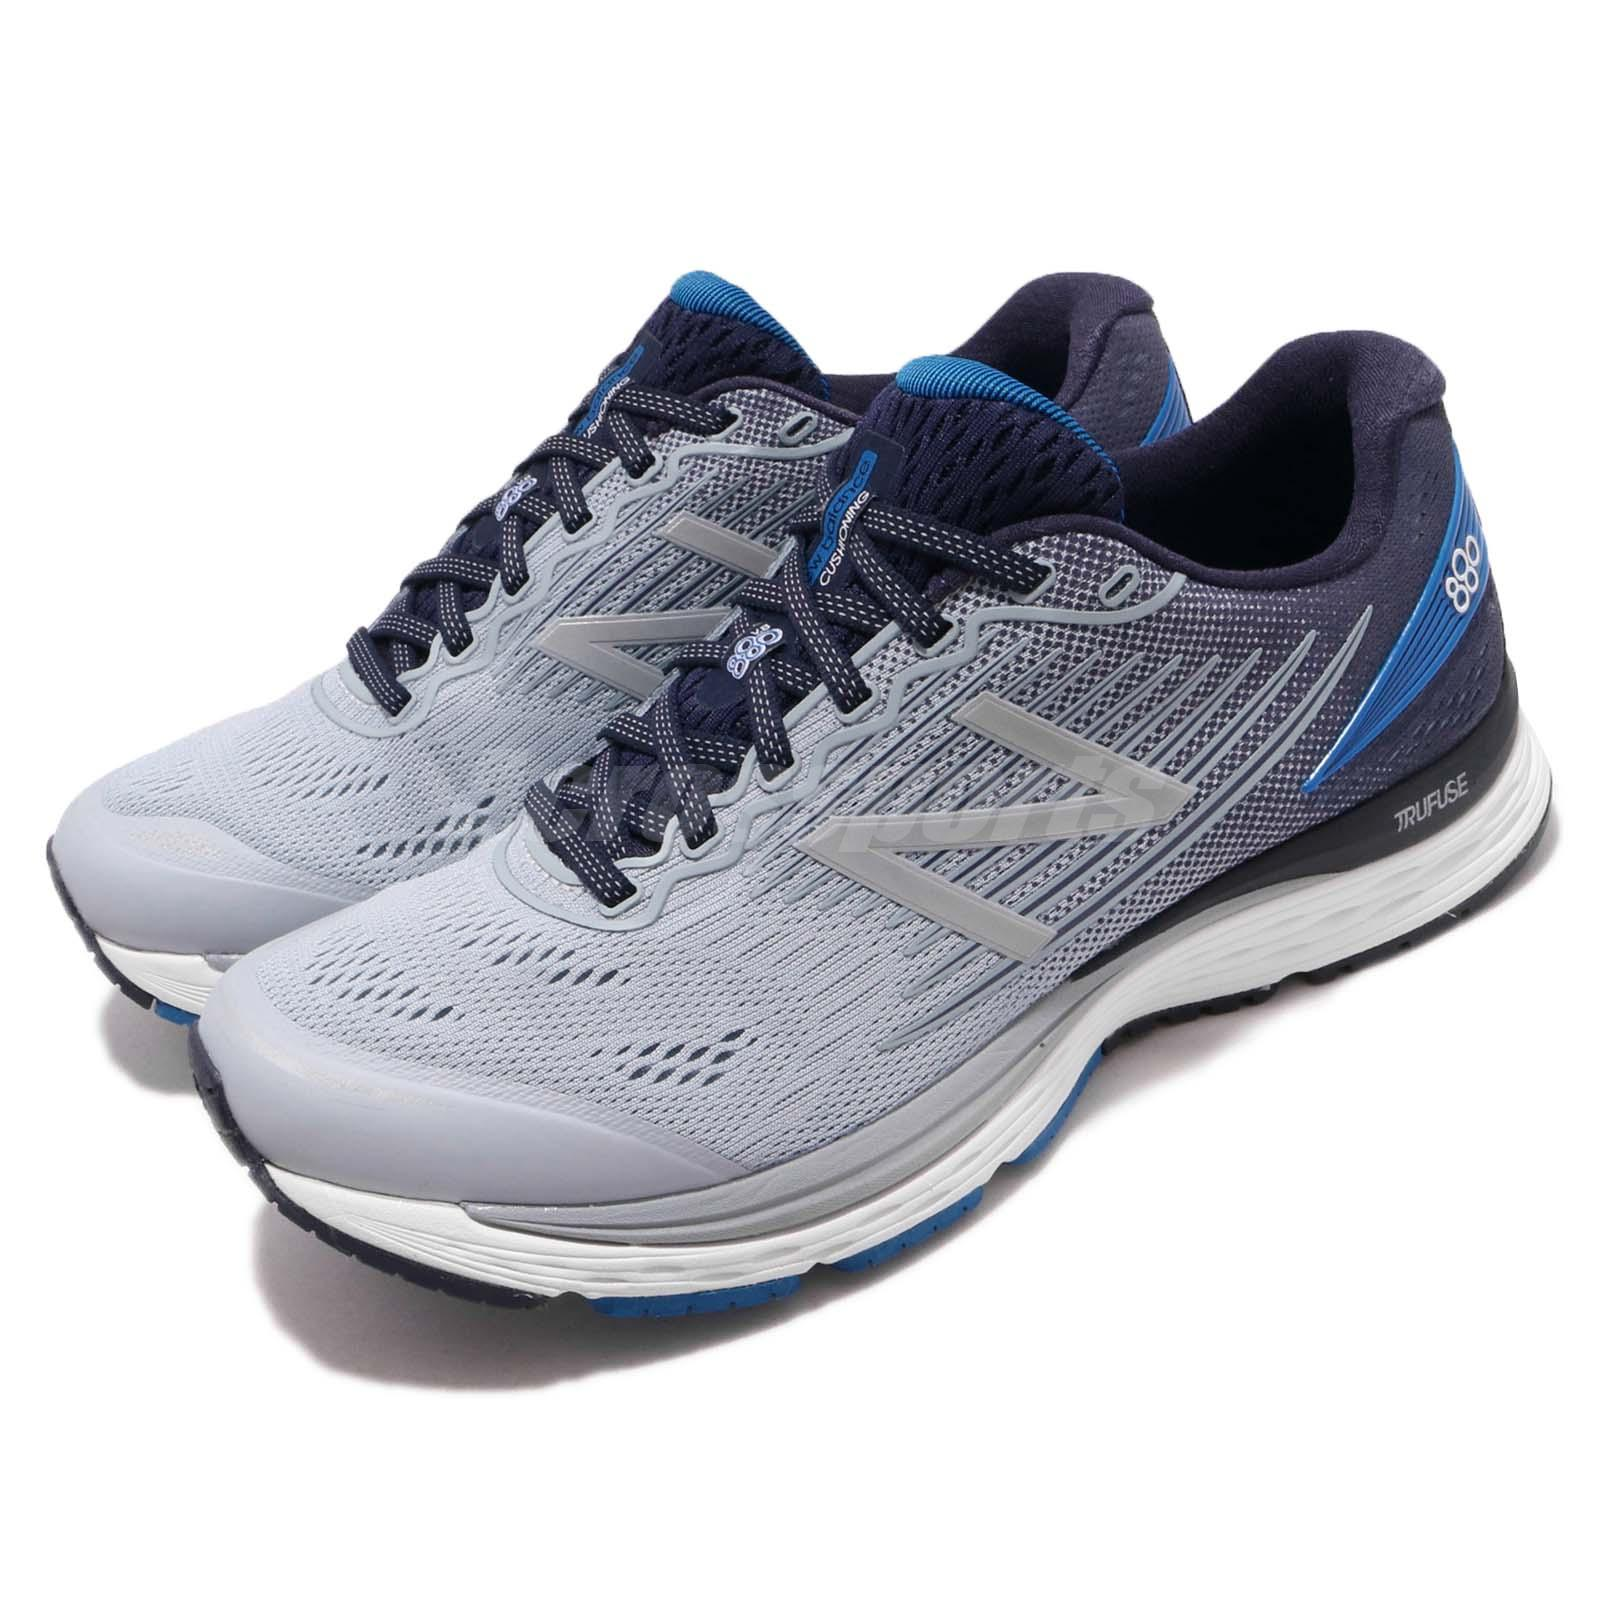 5d130f0e64dd8 Details about New Balance M880SB8 4E Extra Wide Grey Blue Men Running Shoes  Sneakers M880SB84E